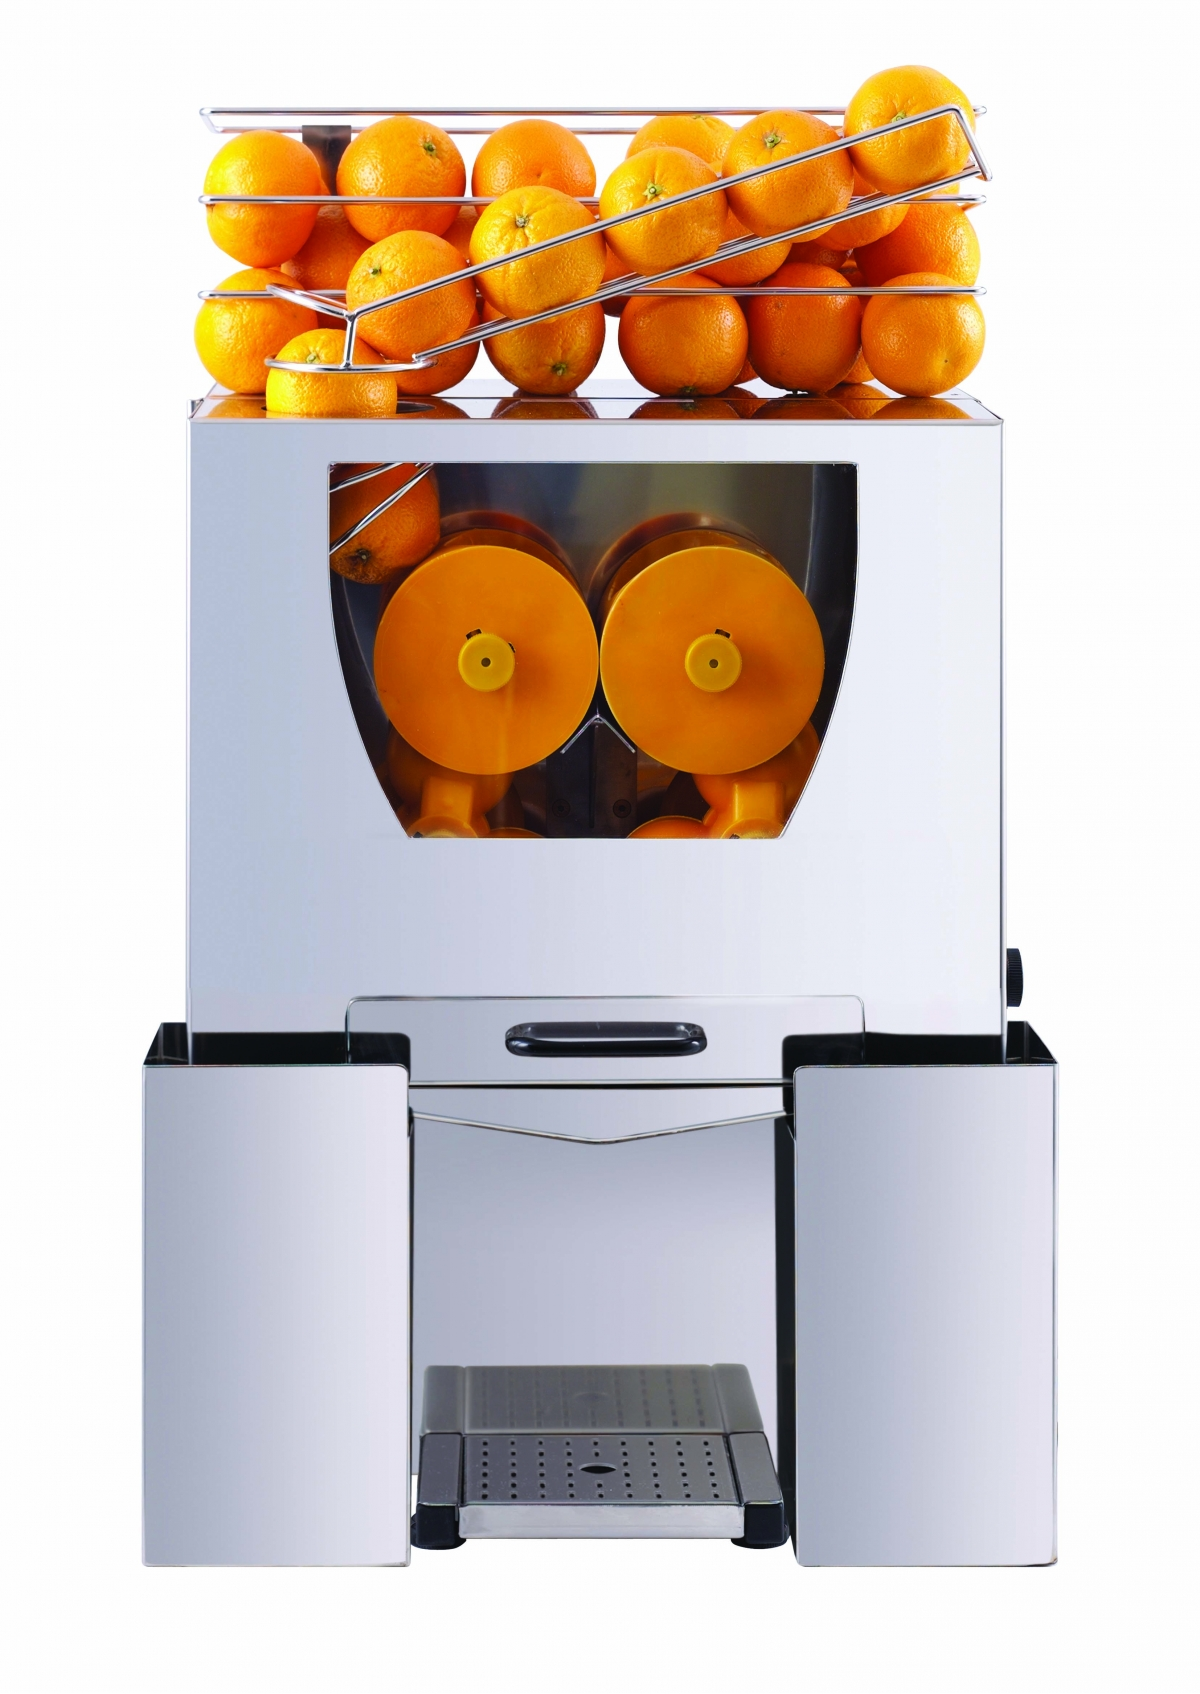 Machine A Presser Les Oranges Presse Orange Automatique